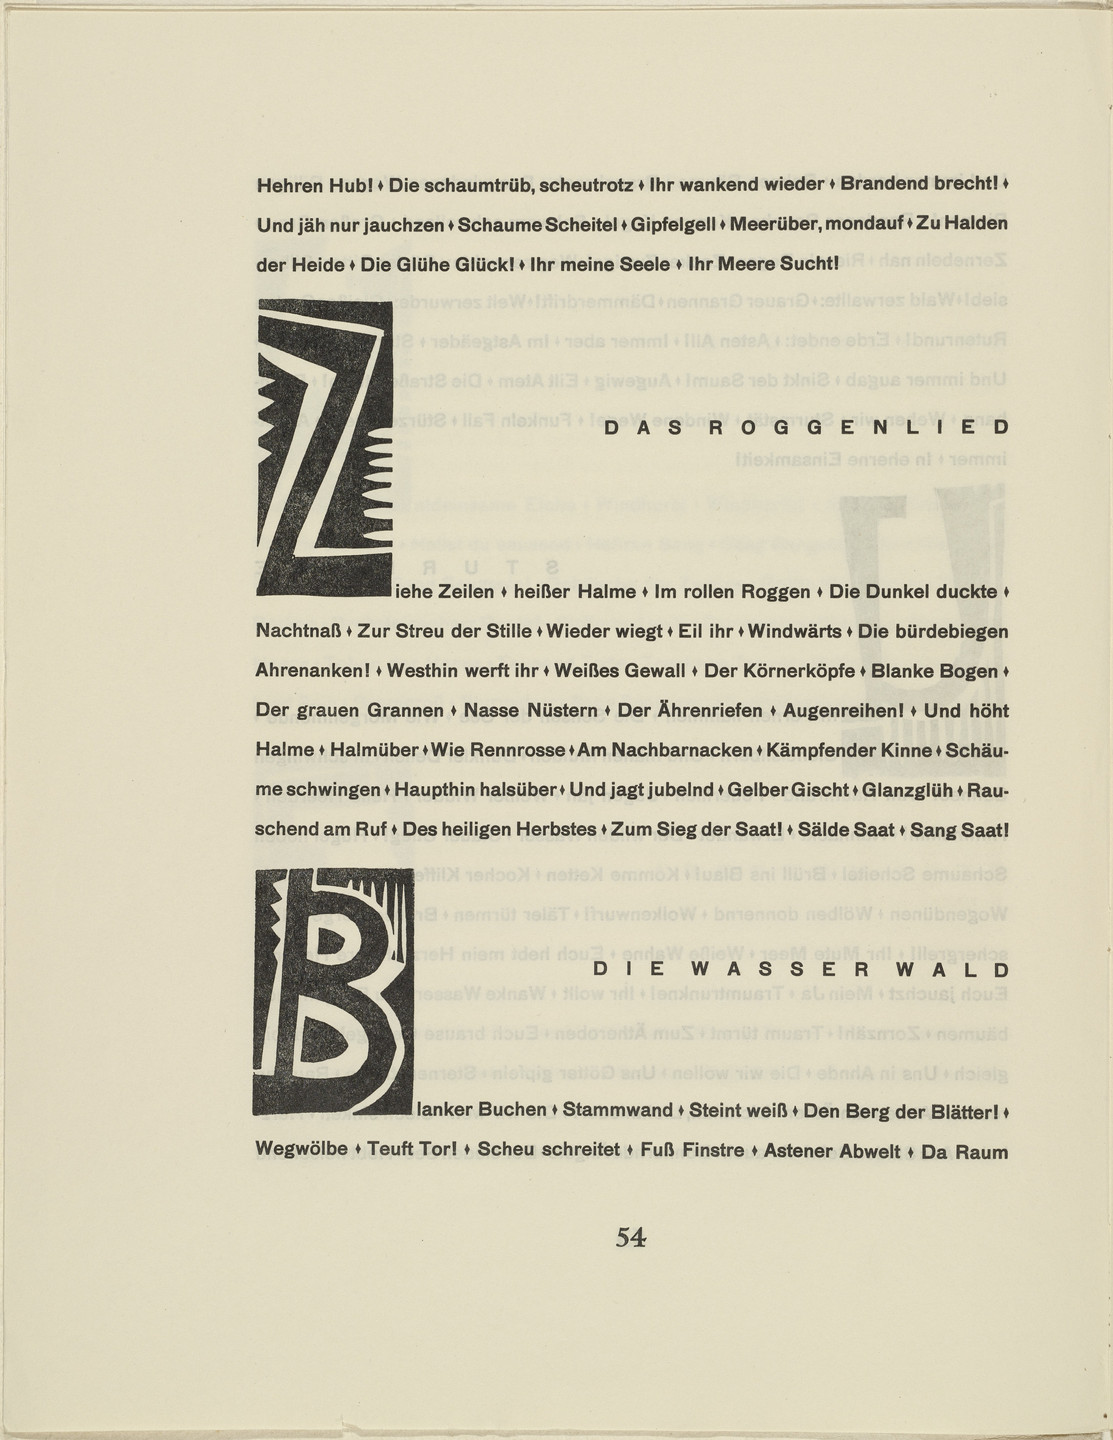 Karl Schmidt-Rottluff. Ornamental initial 'Z' from the periodical Kündung, vol. 1, no. 4, 5, 6 (April, May, June 1921). 1921 (executed 1920)